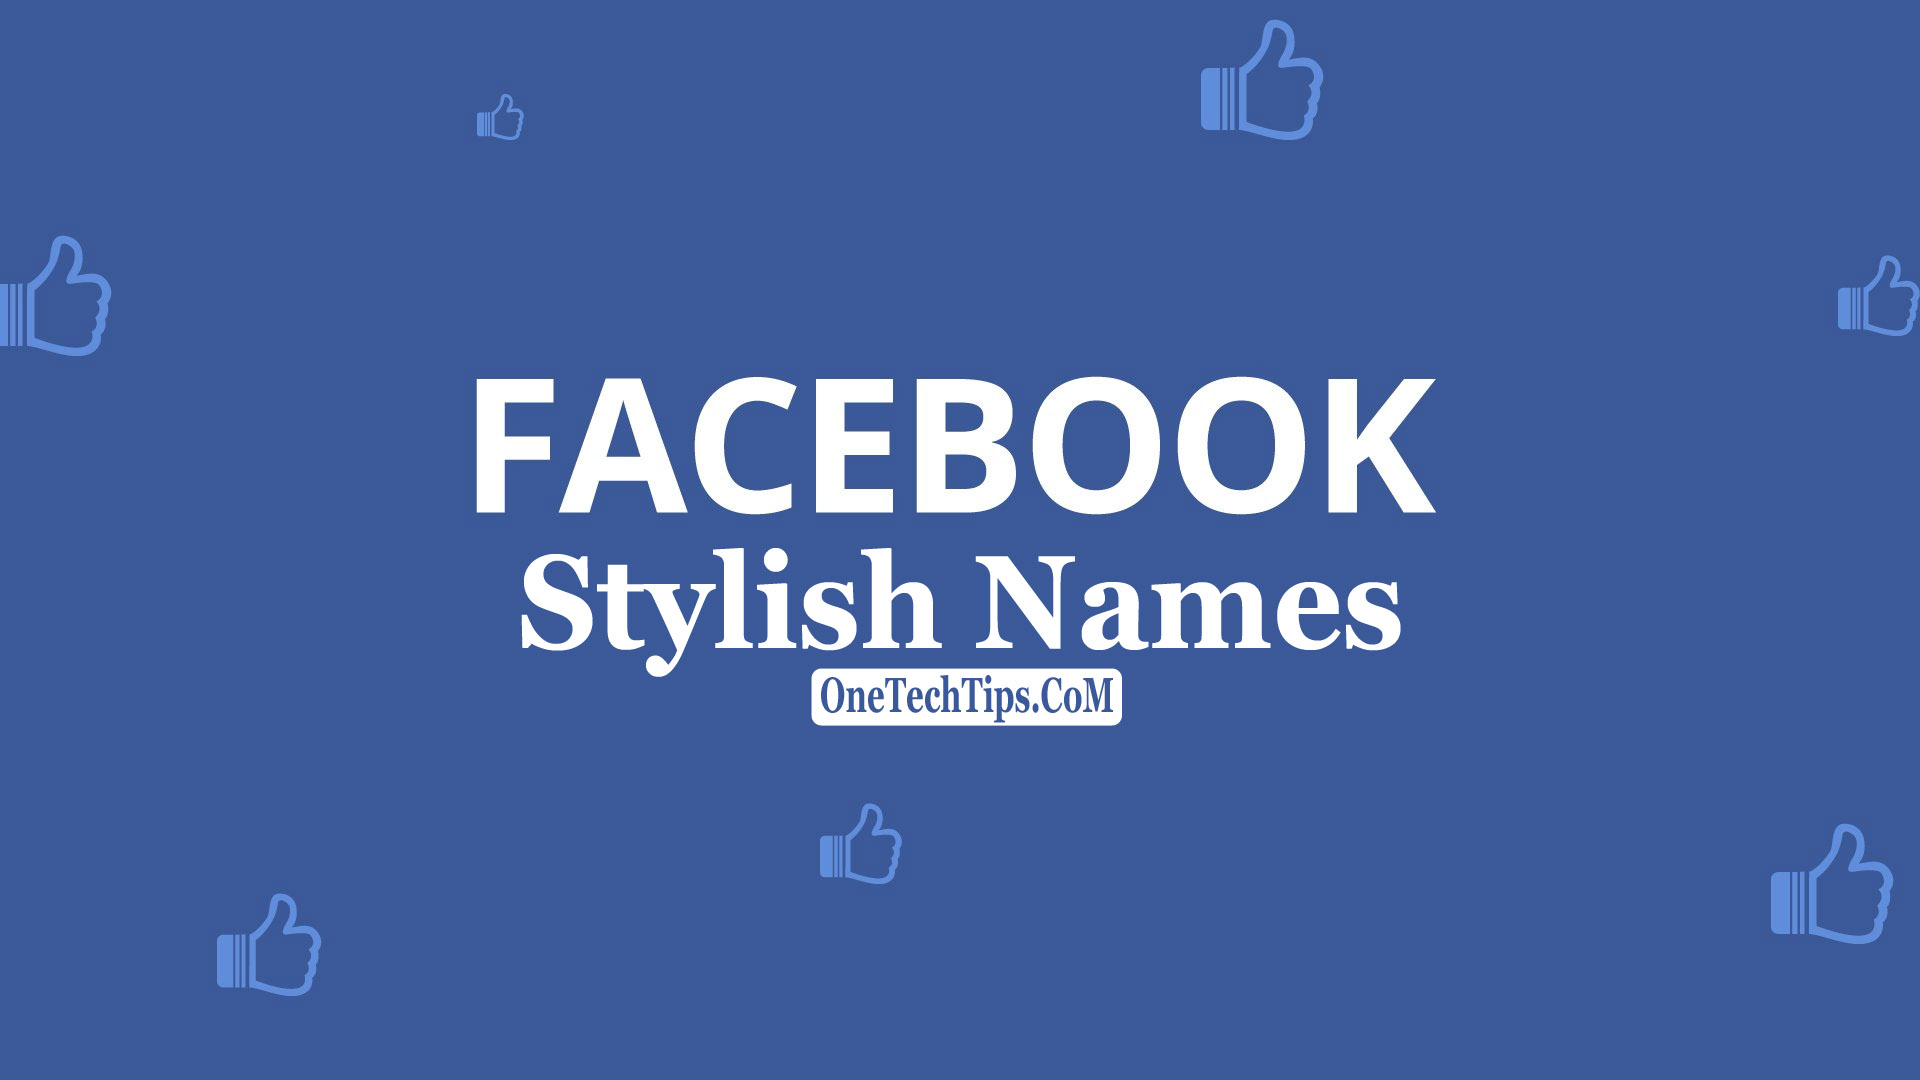 Facebook Stylish Name